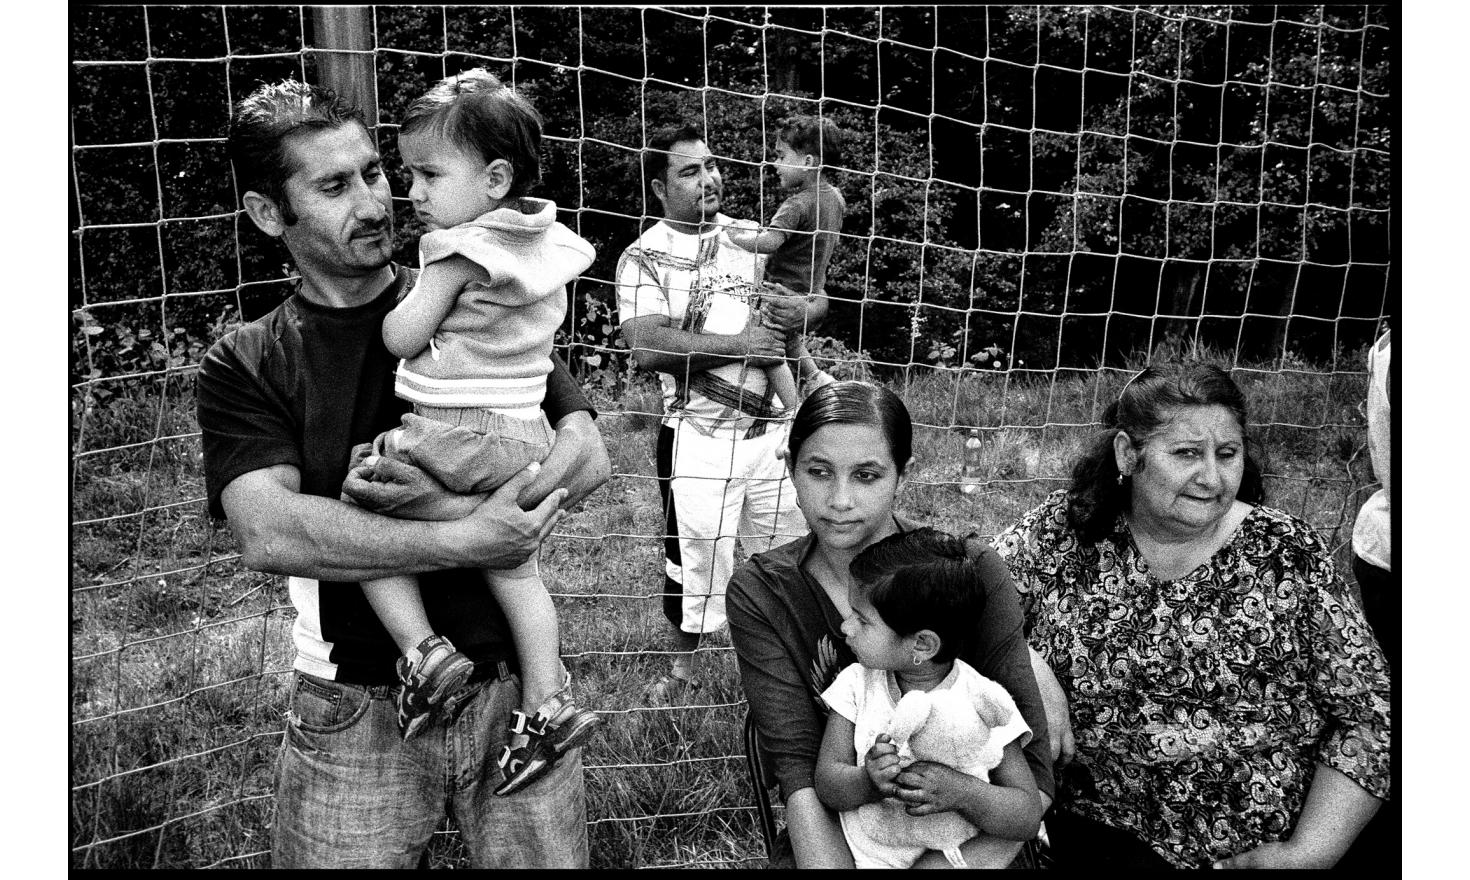 Roma families have been relocated in an area far from the center of town, where they used to live. Vsetin, Czech Republic. Mai 2009.